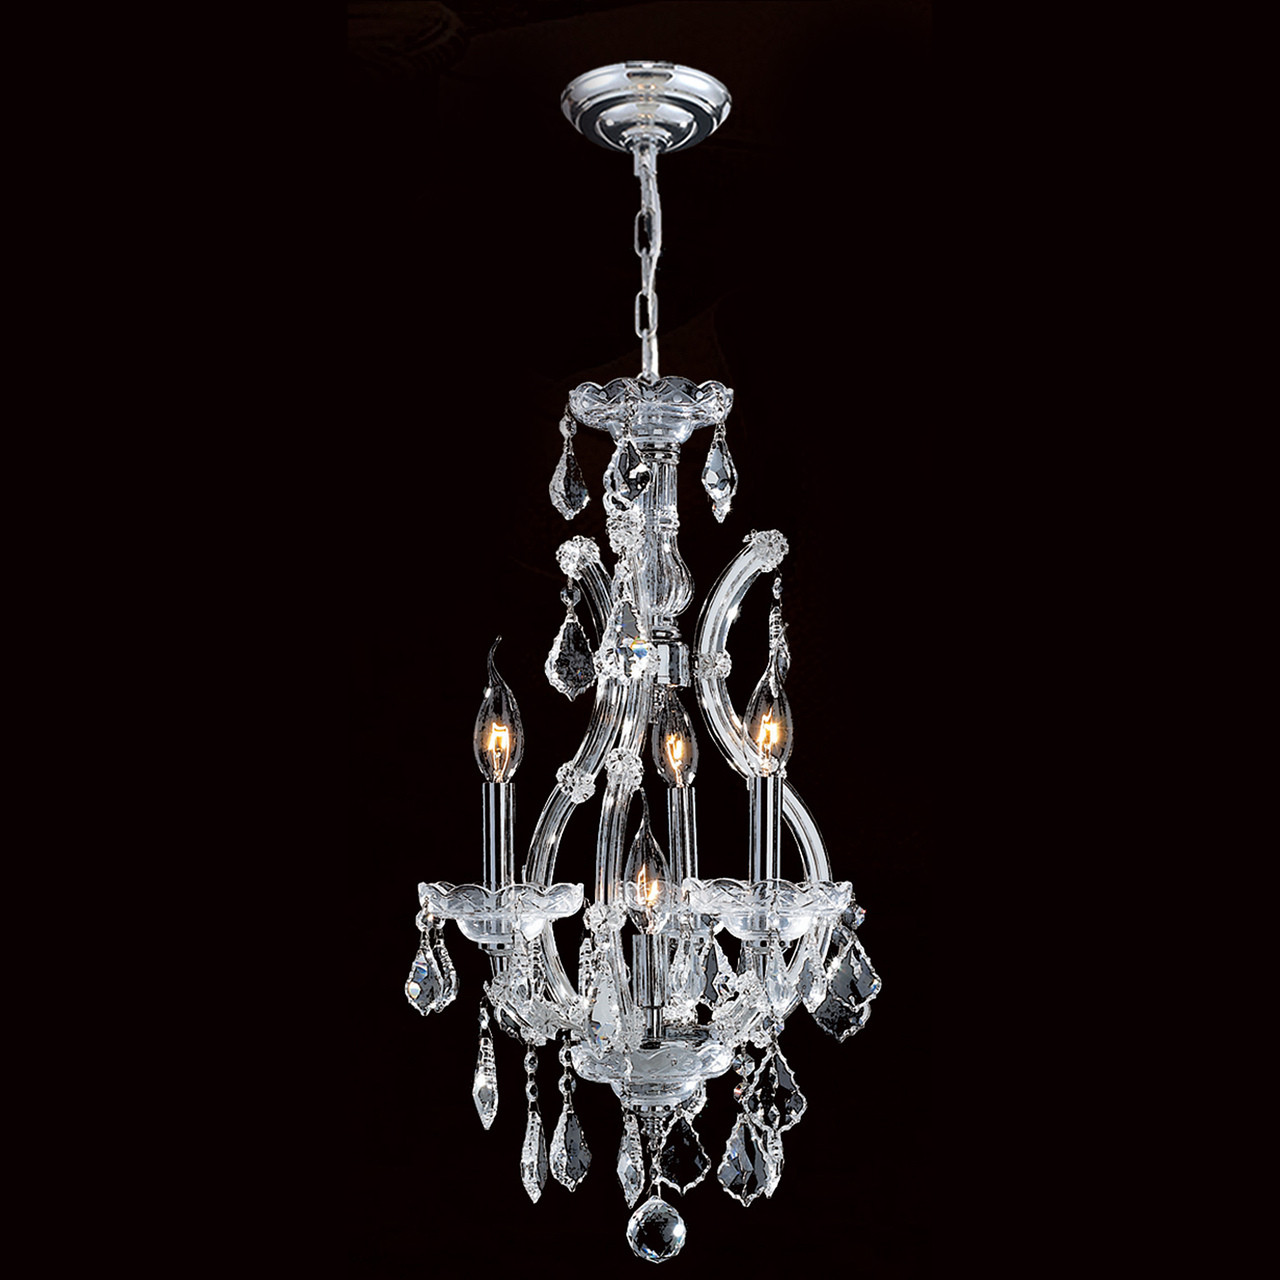 4 light maria theresa mini crystal chandeliers kl 41039 4 c